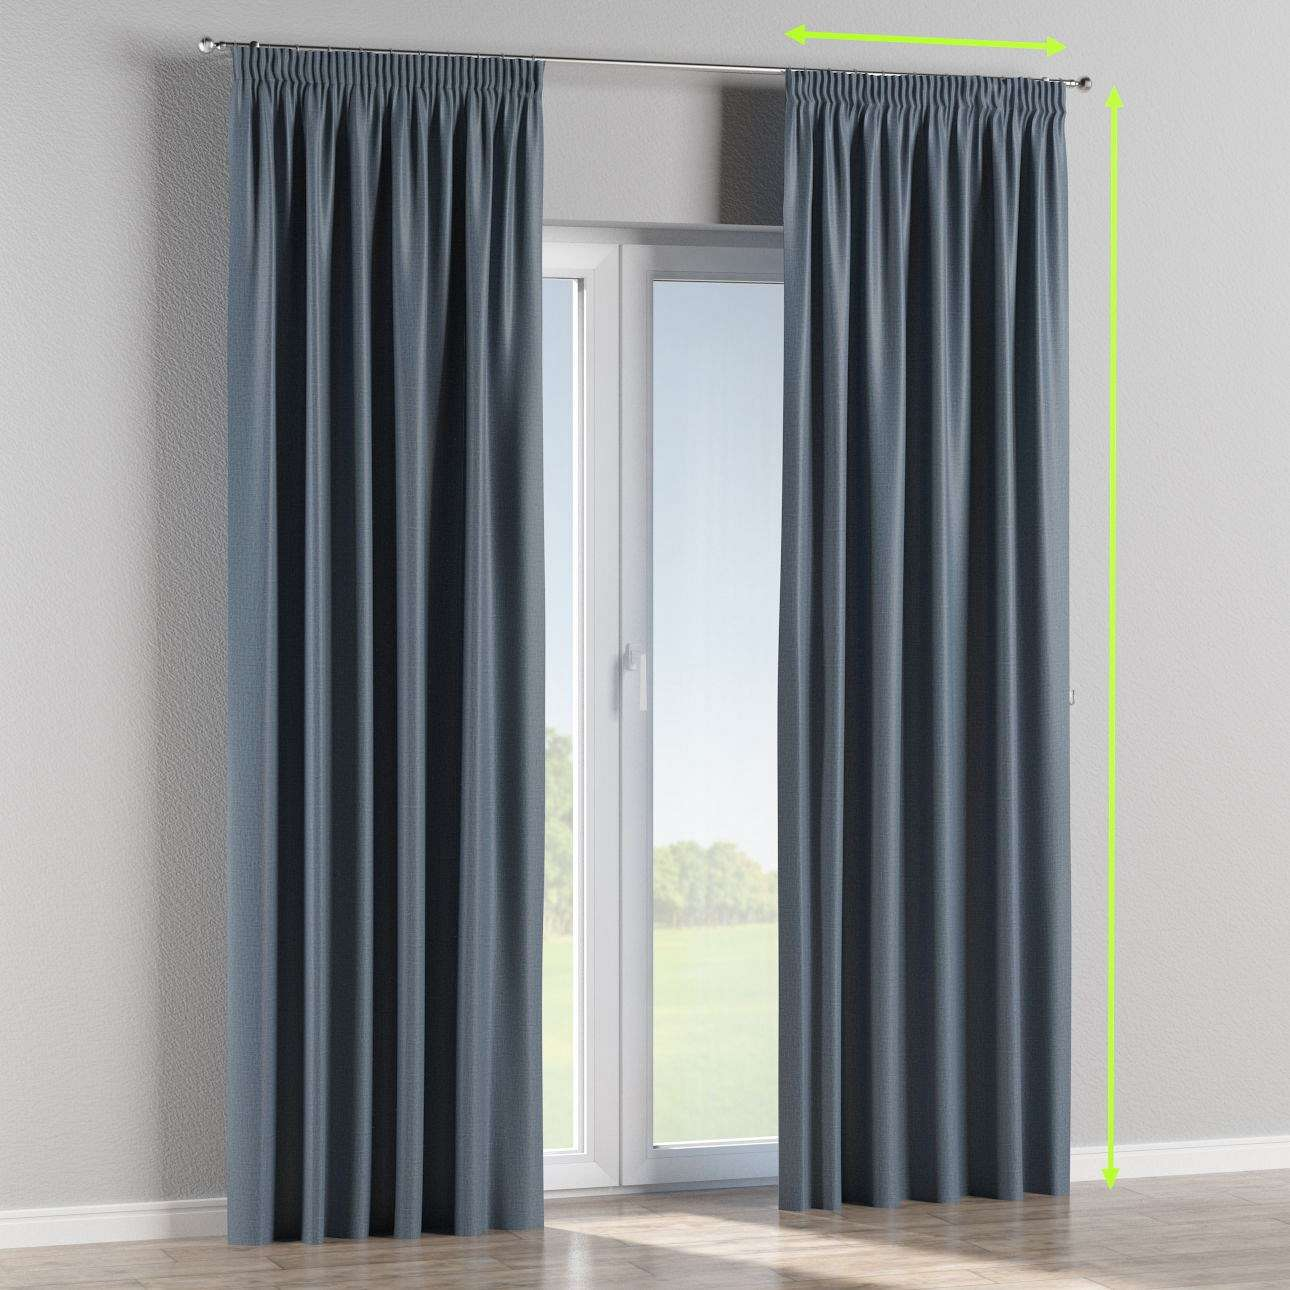 Pencil pleat curtain in collection Blackout, fabric: 269-67